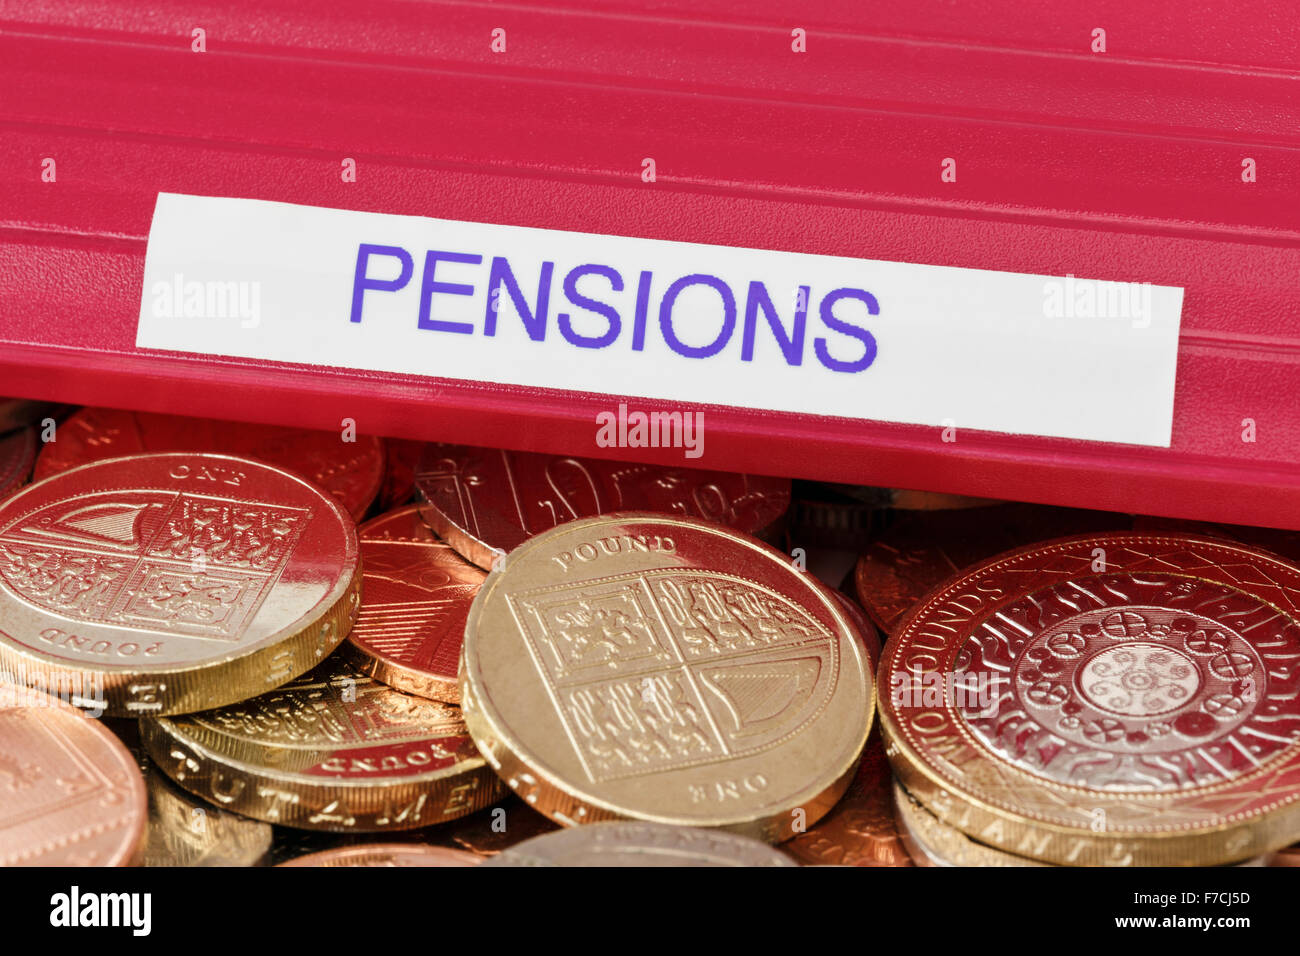 Pensions portfolio on a pile of sterling pound coins to illustrate investing money for retirement planning and pension Stock Photo